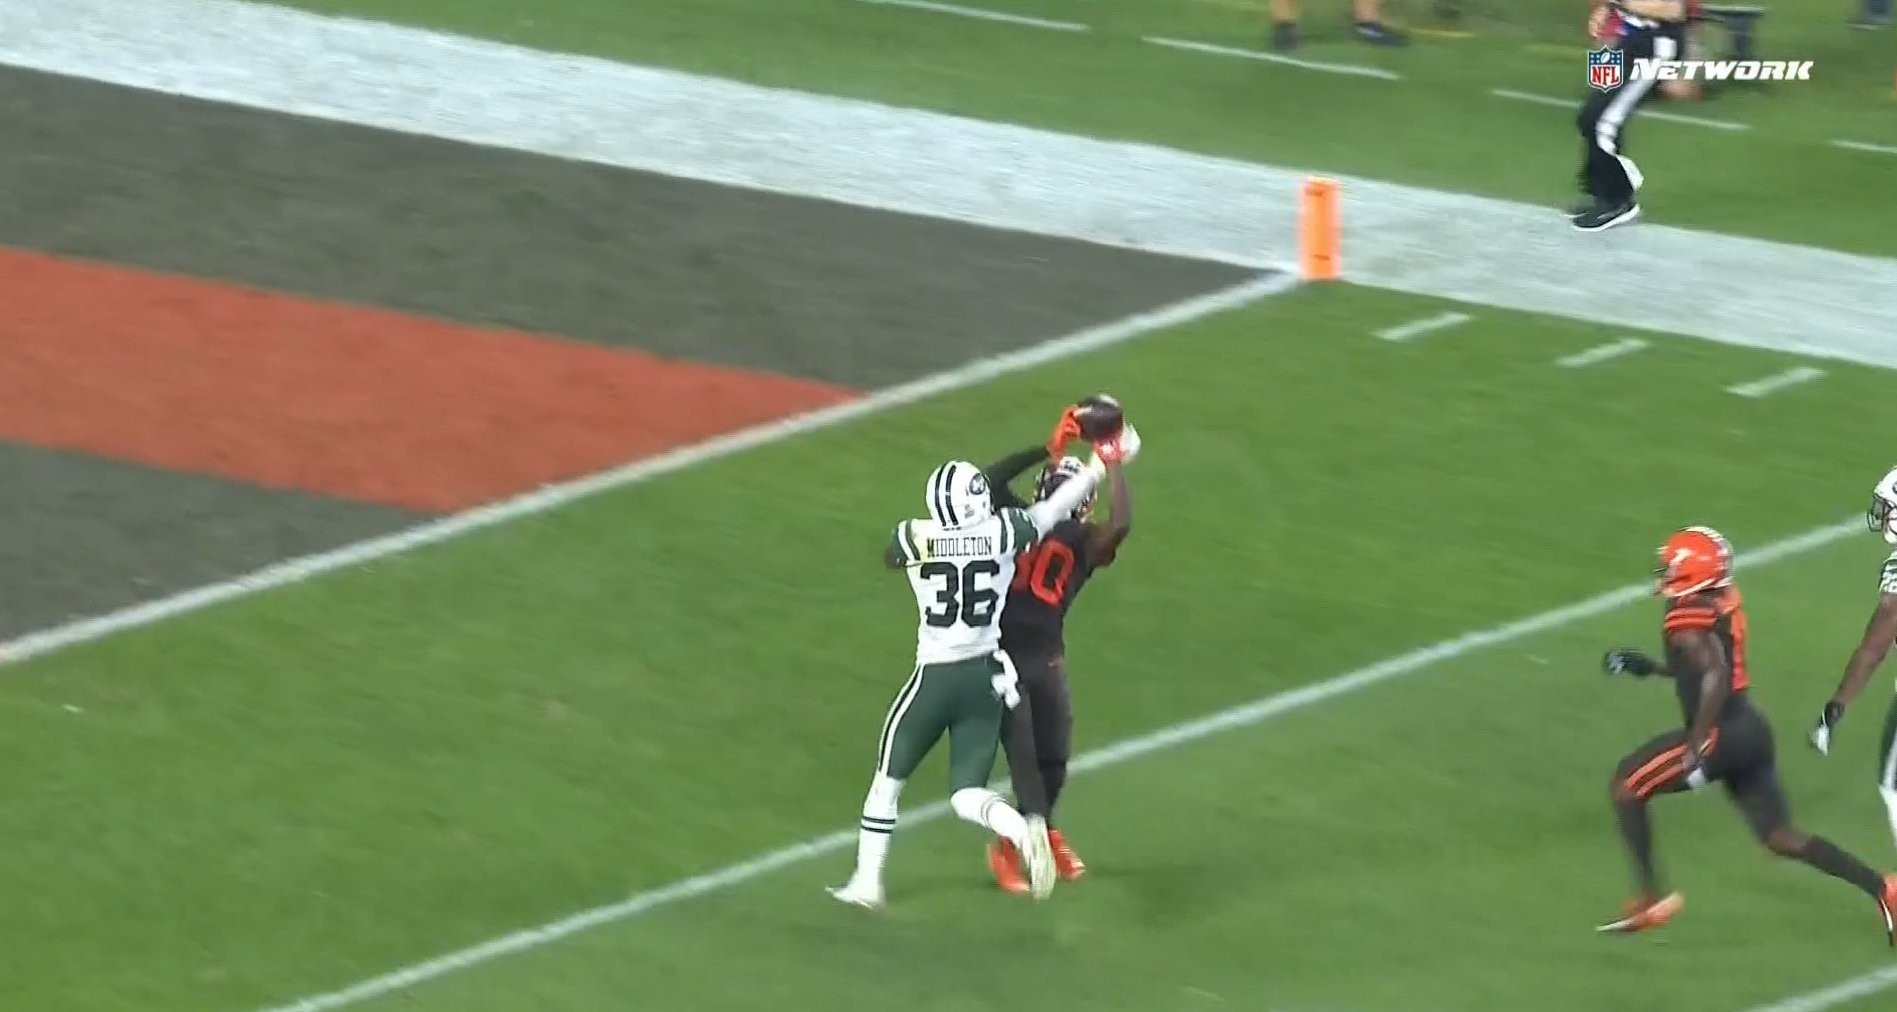 This incredible grab from @God_Son80 sets up a Cleveland touchdown! #NYJvsCLE https://t.co/wKqGvTXJnk